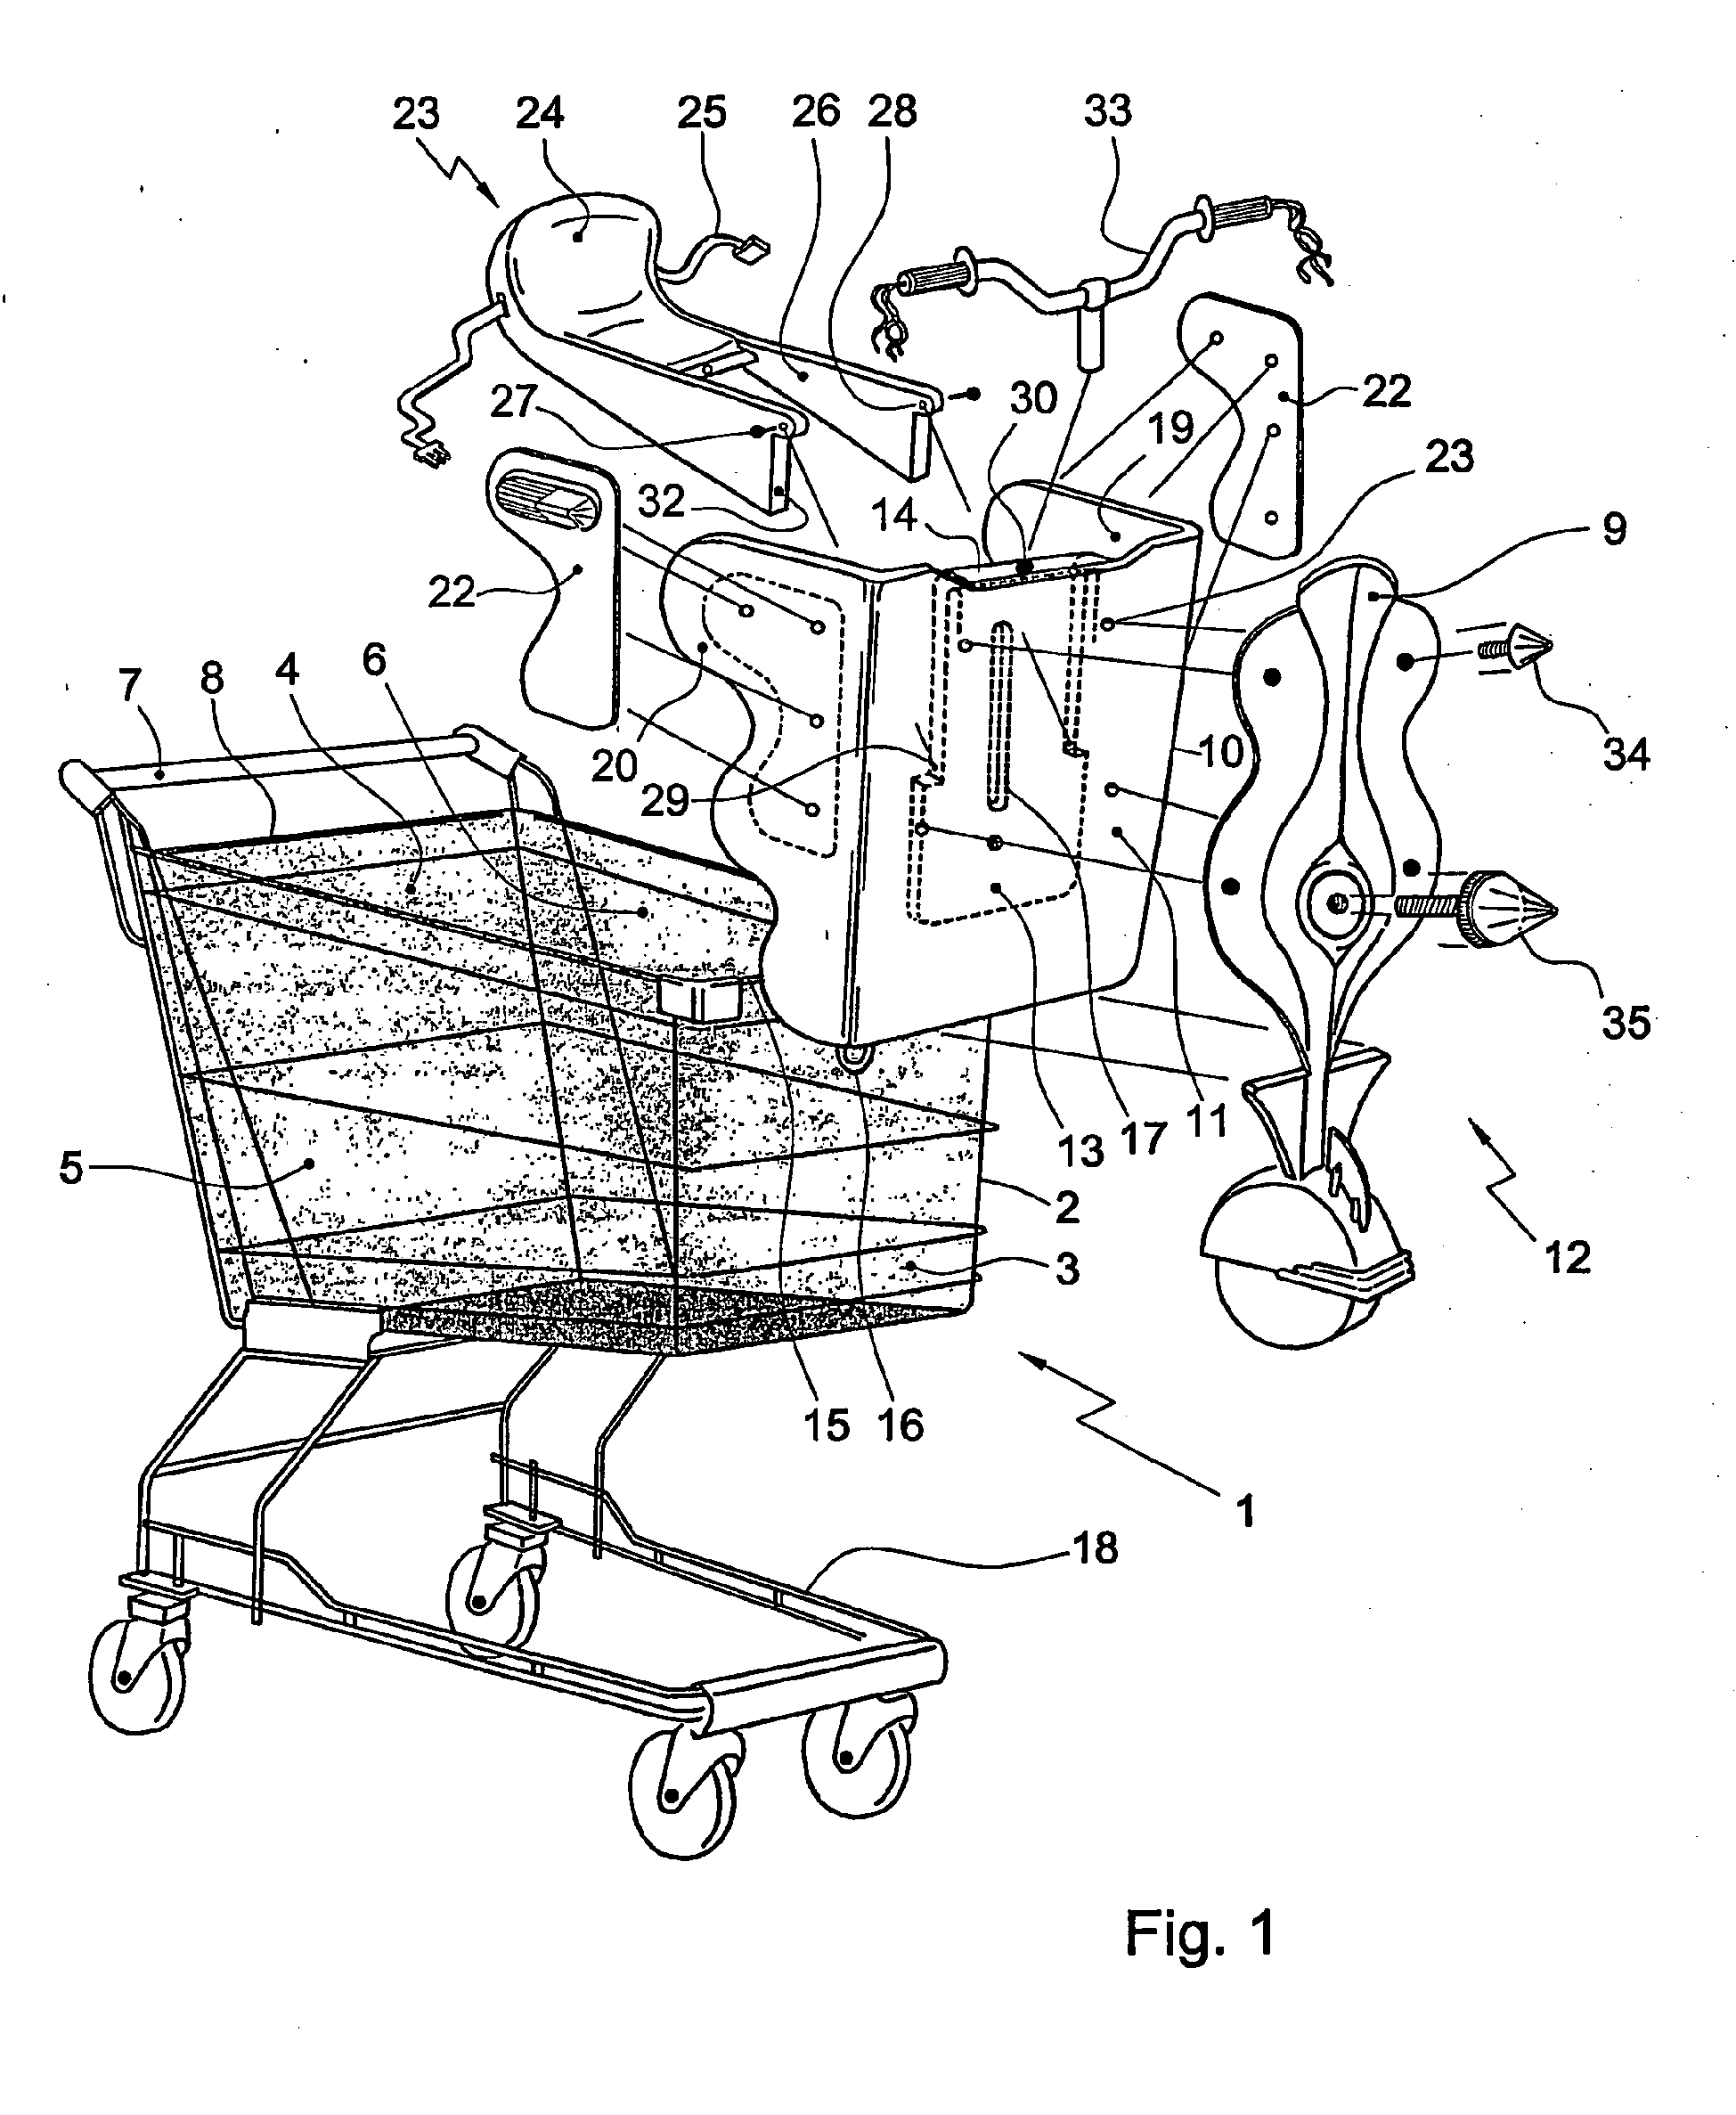 It's just a photo of Sweet Shopping Cart Drawing